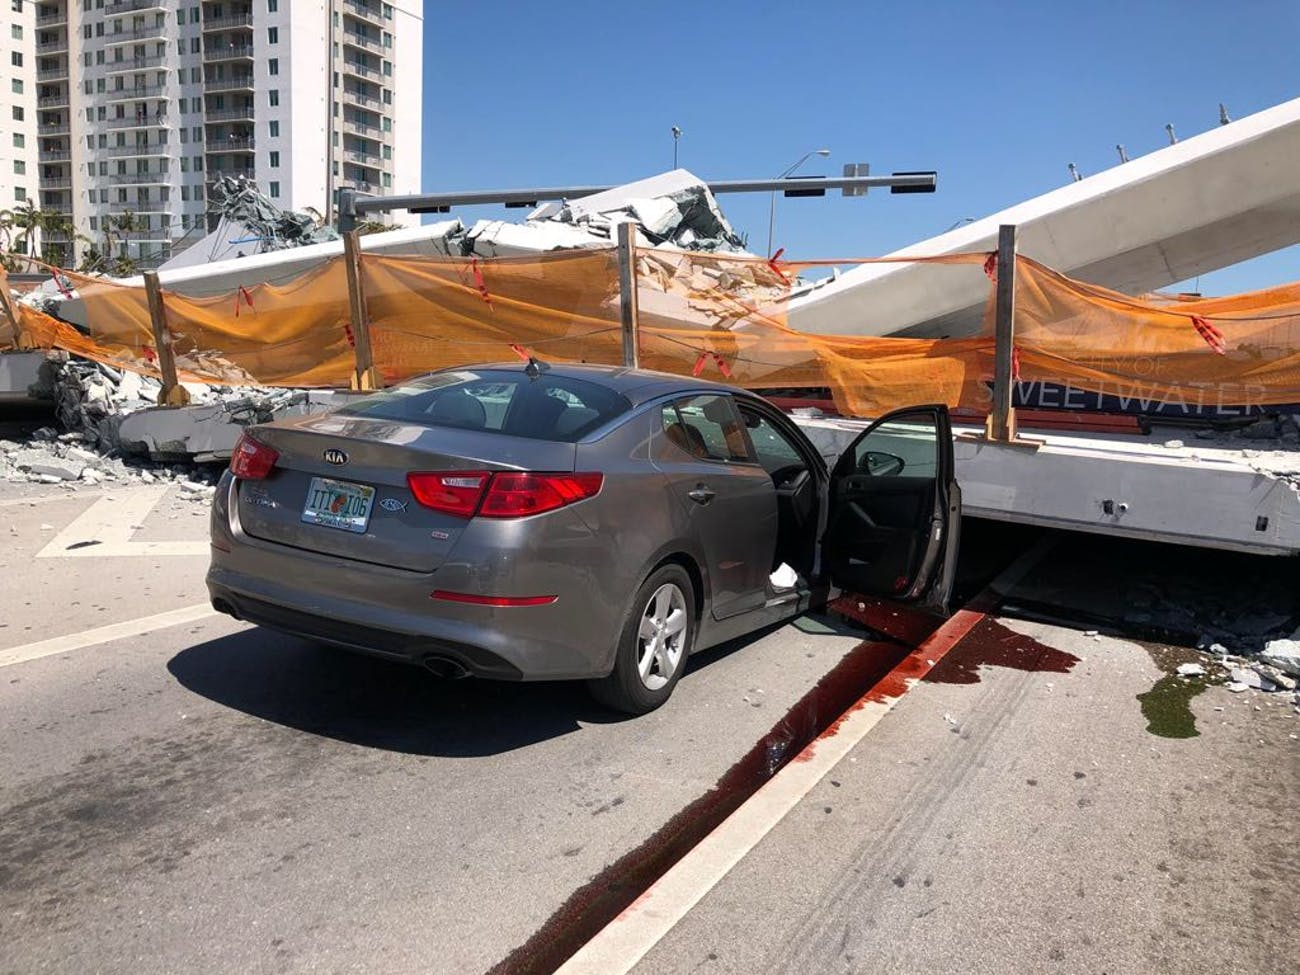 Miami pedestrian bridge collapse